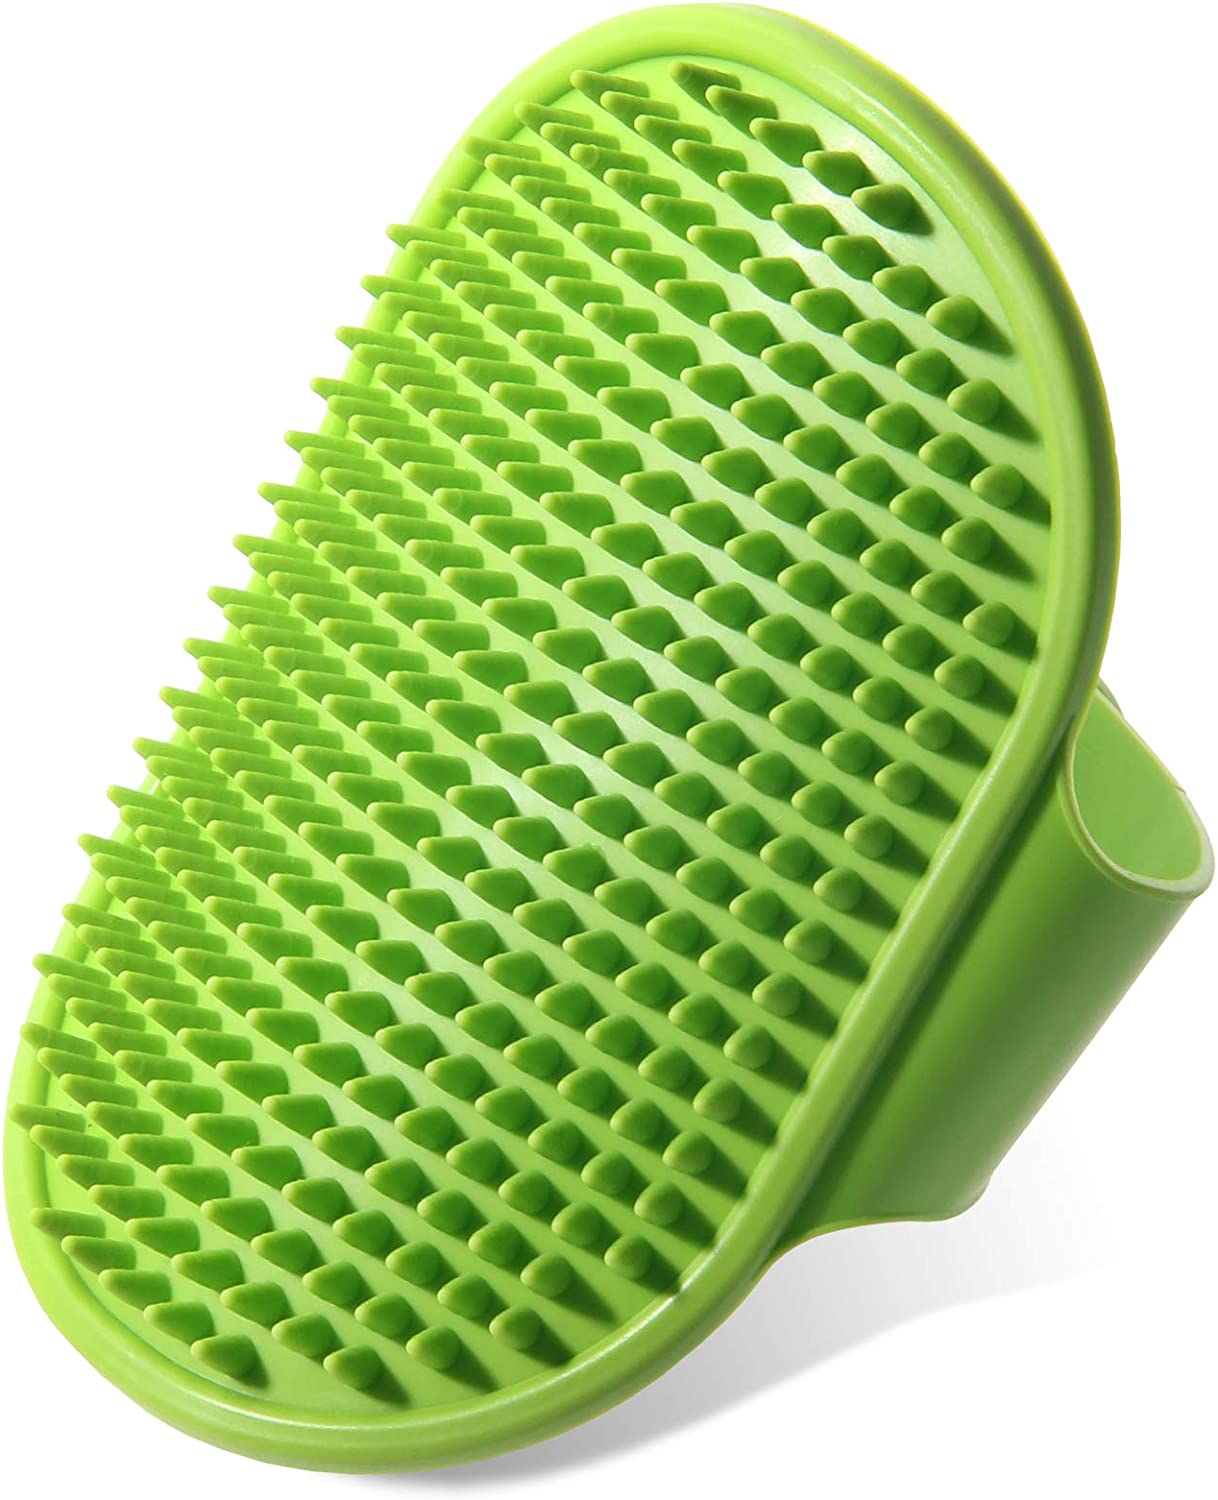 Rabbits Horses- Remove More Dirt /& Loose Hair. Best Pet Bathing /& Soothing Massage Rubber Comb with Adjustable Ring Handle for Medium /& Large Dogs Cats Premium New Grooming Pet Shampoo Bath Brush